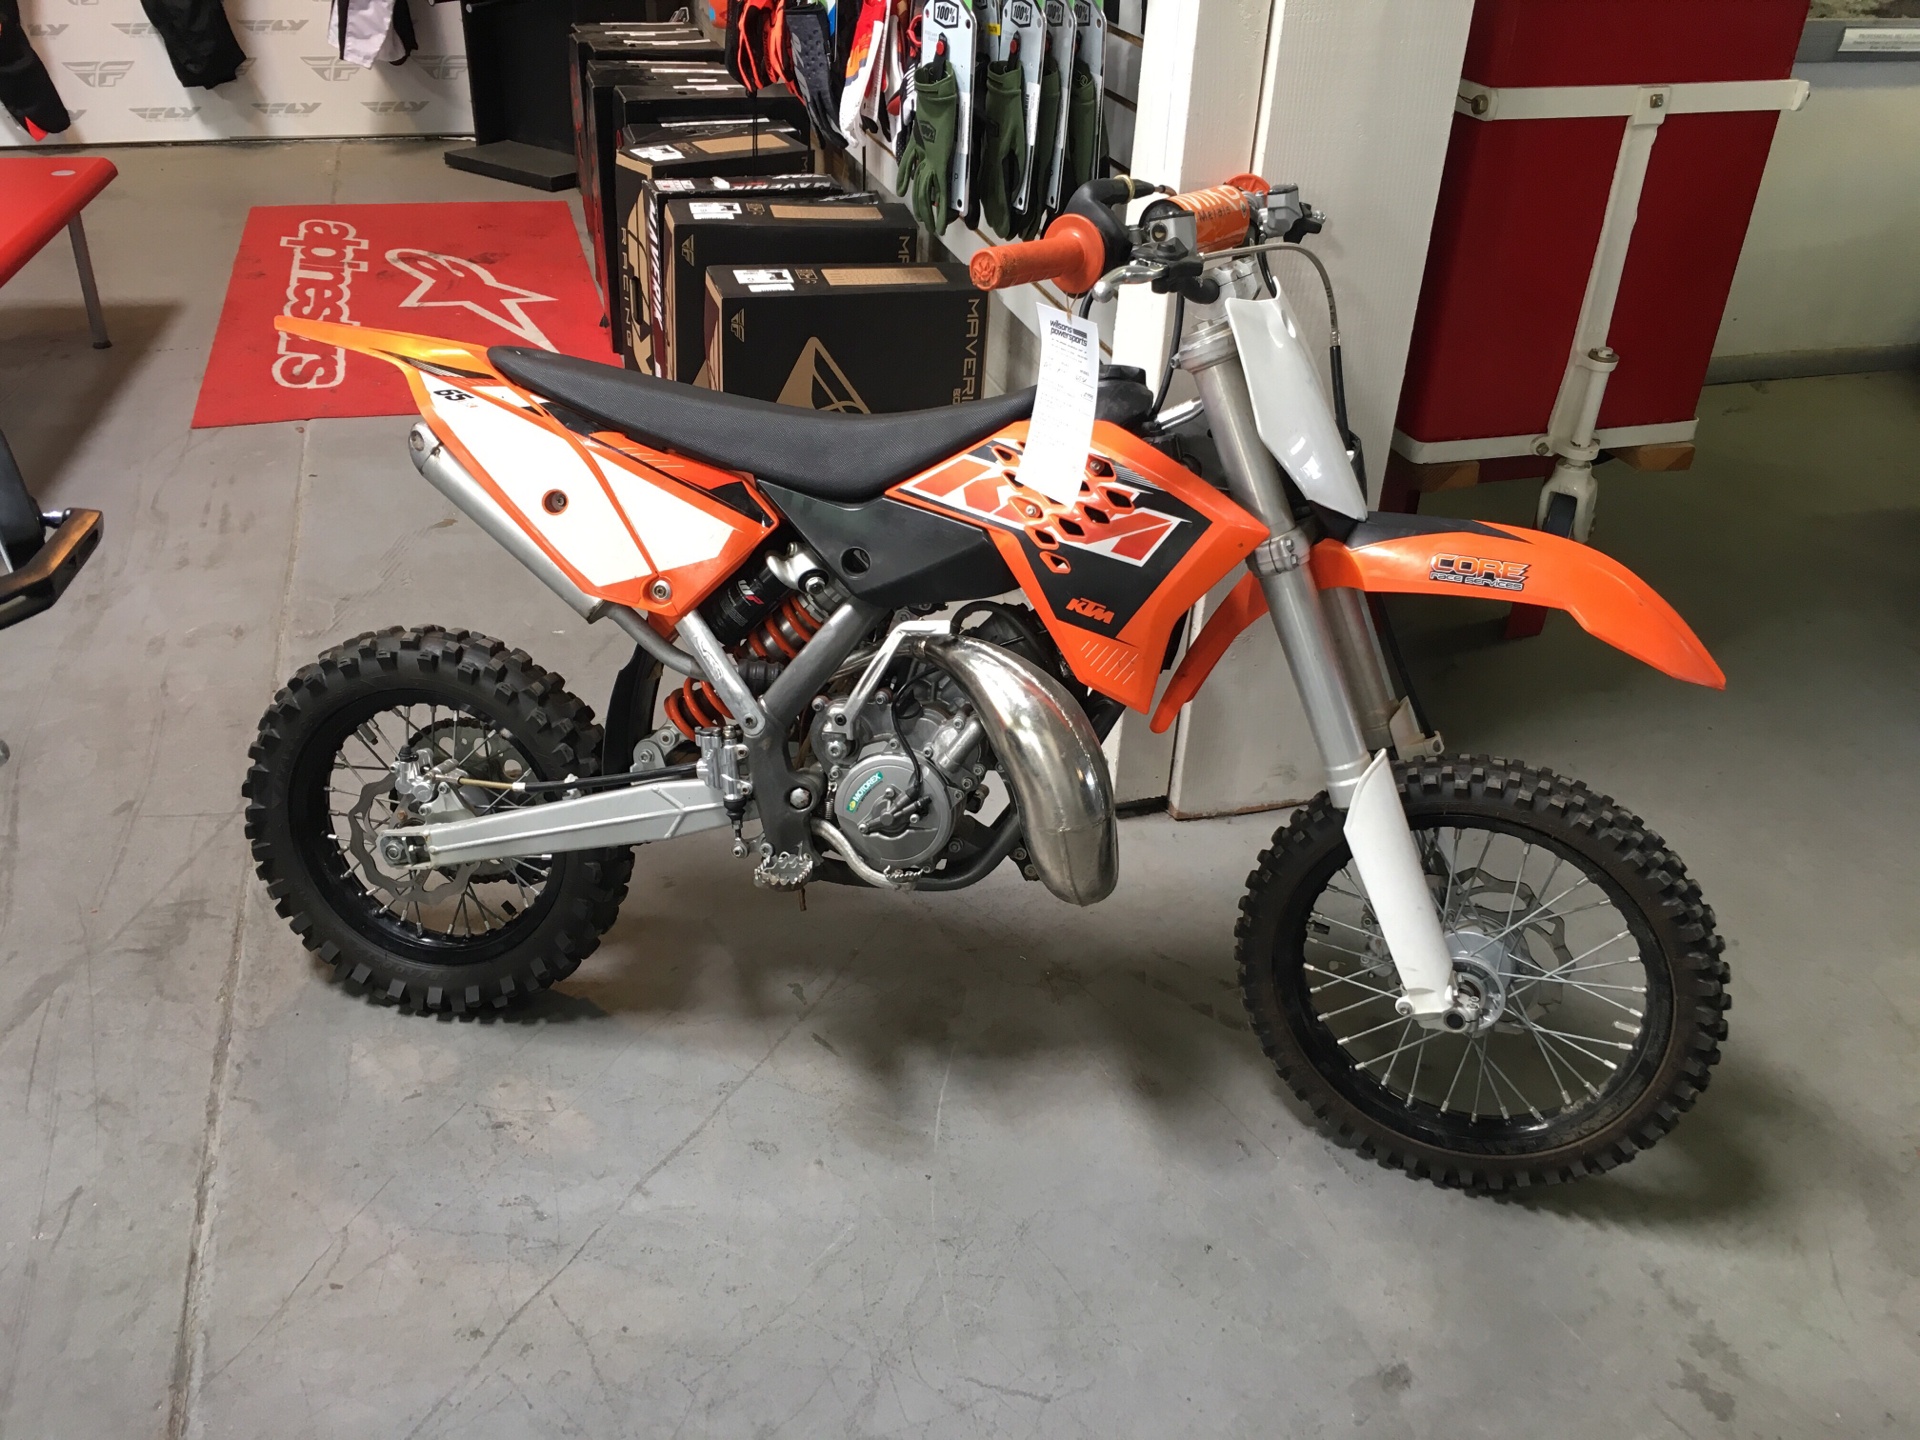 2013 KTM KTM 650SX in Madera, California